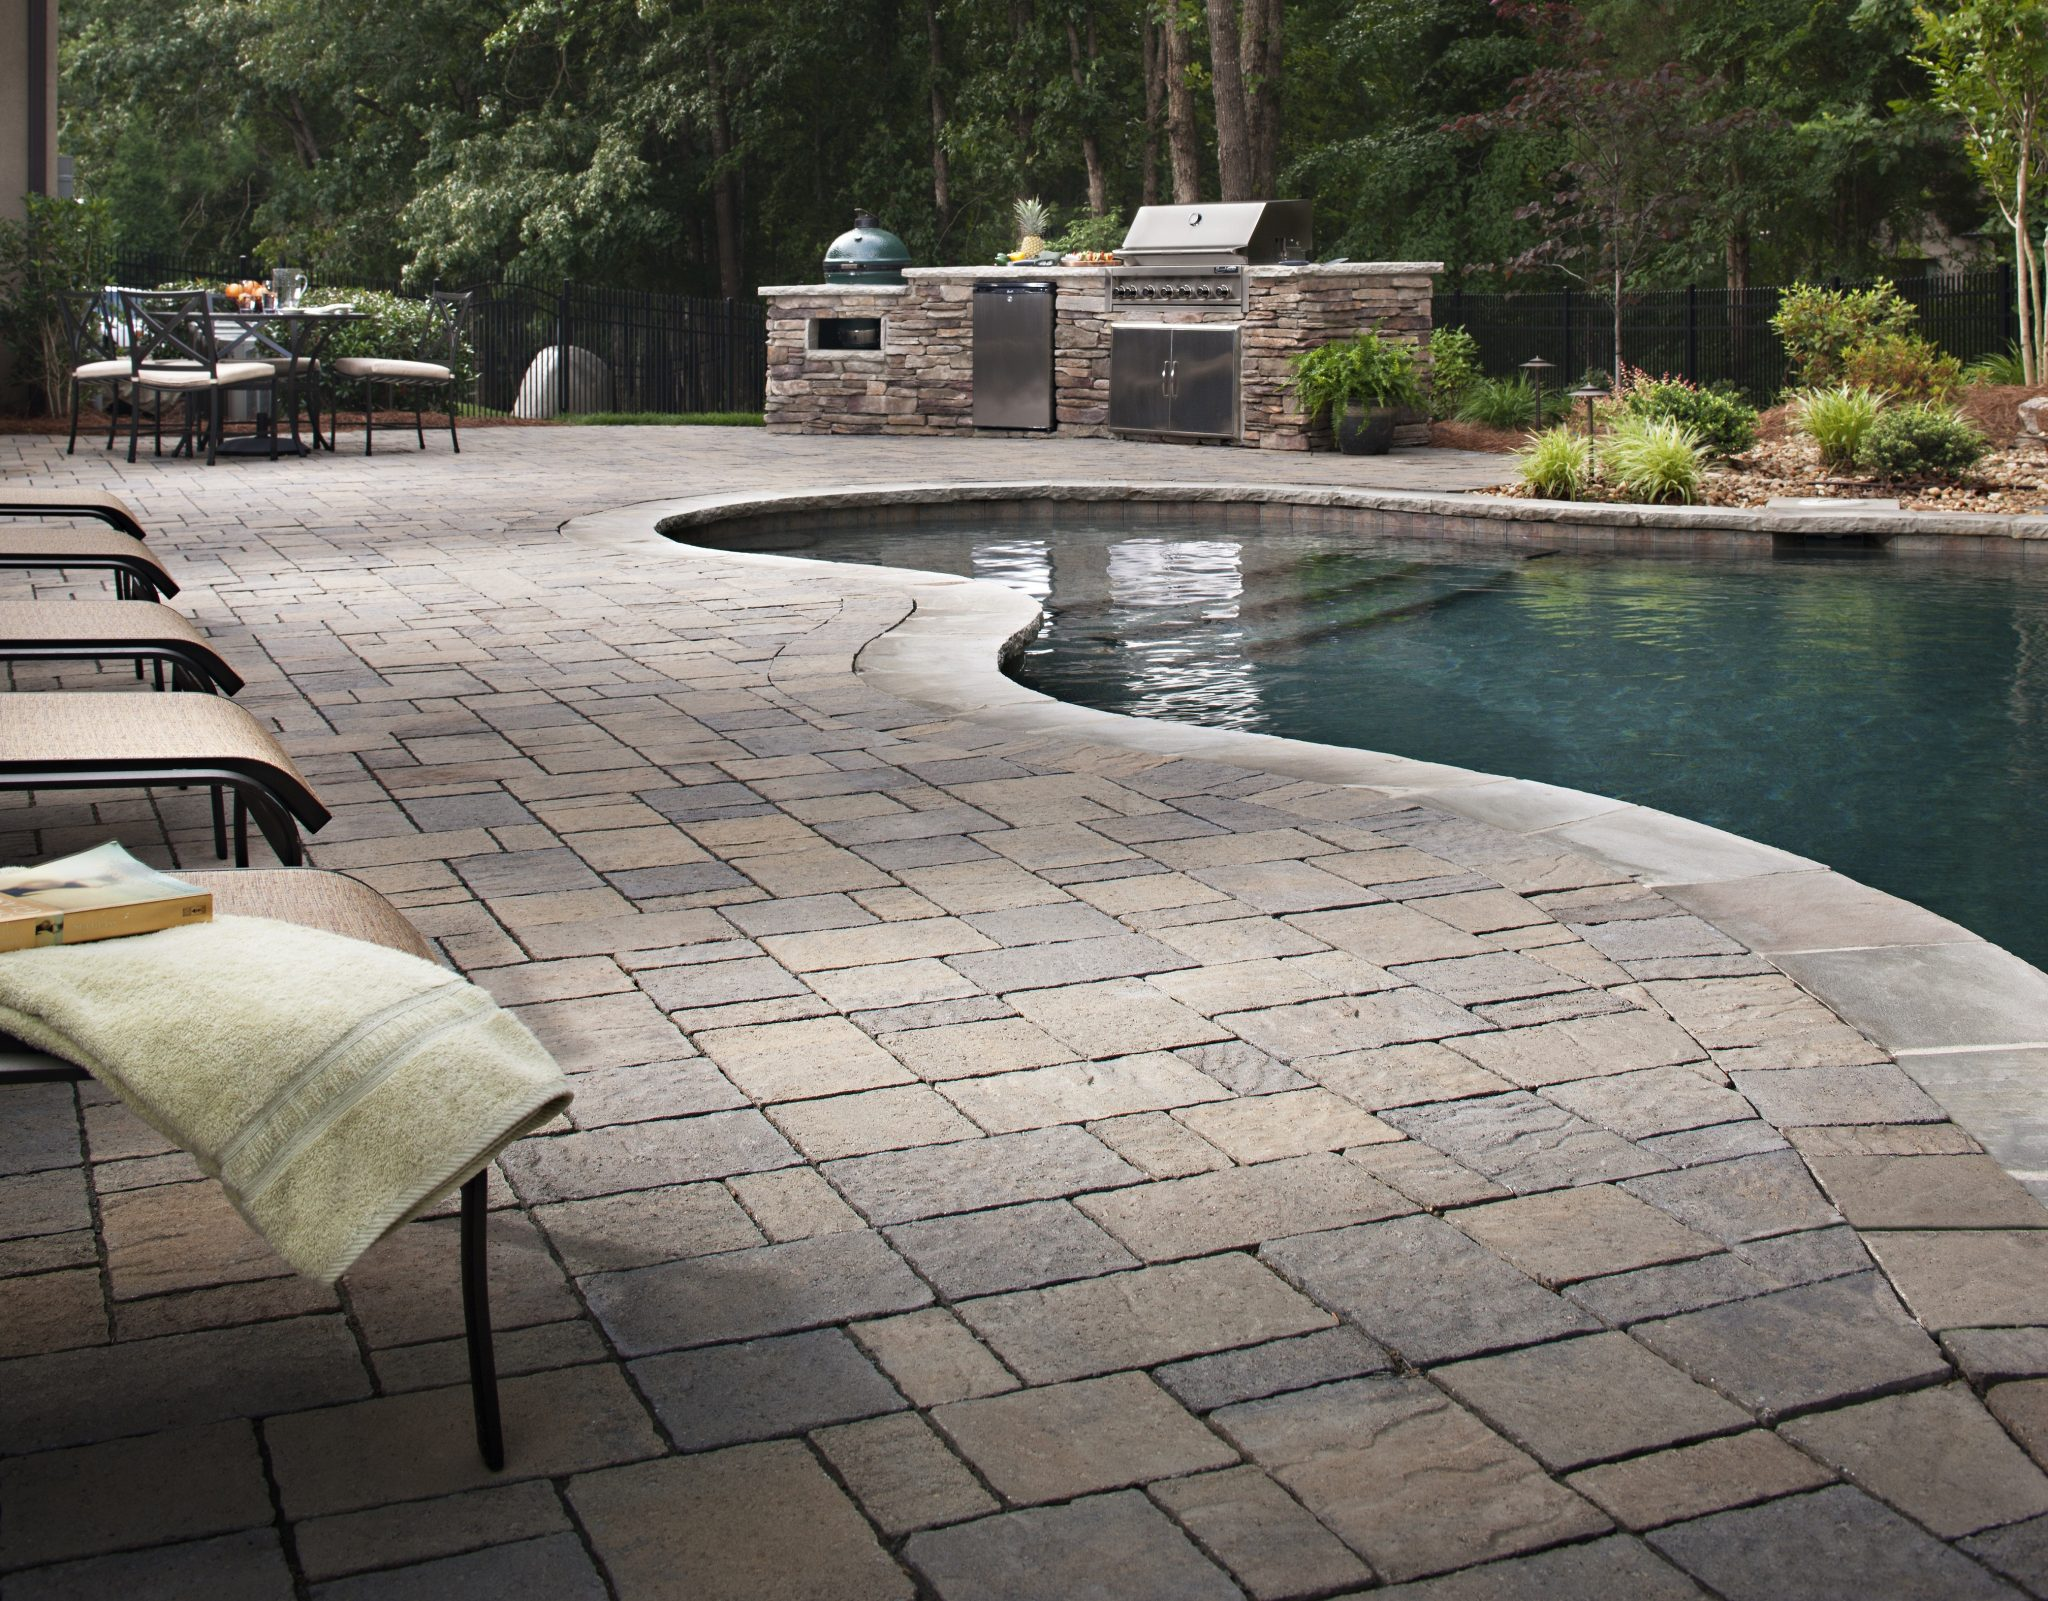 pool-deck-paving34f5g6h7jh6g54f3dx